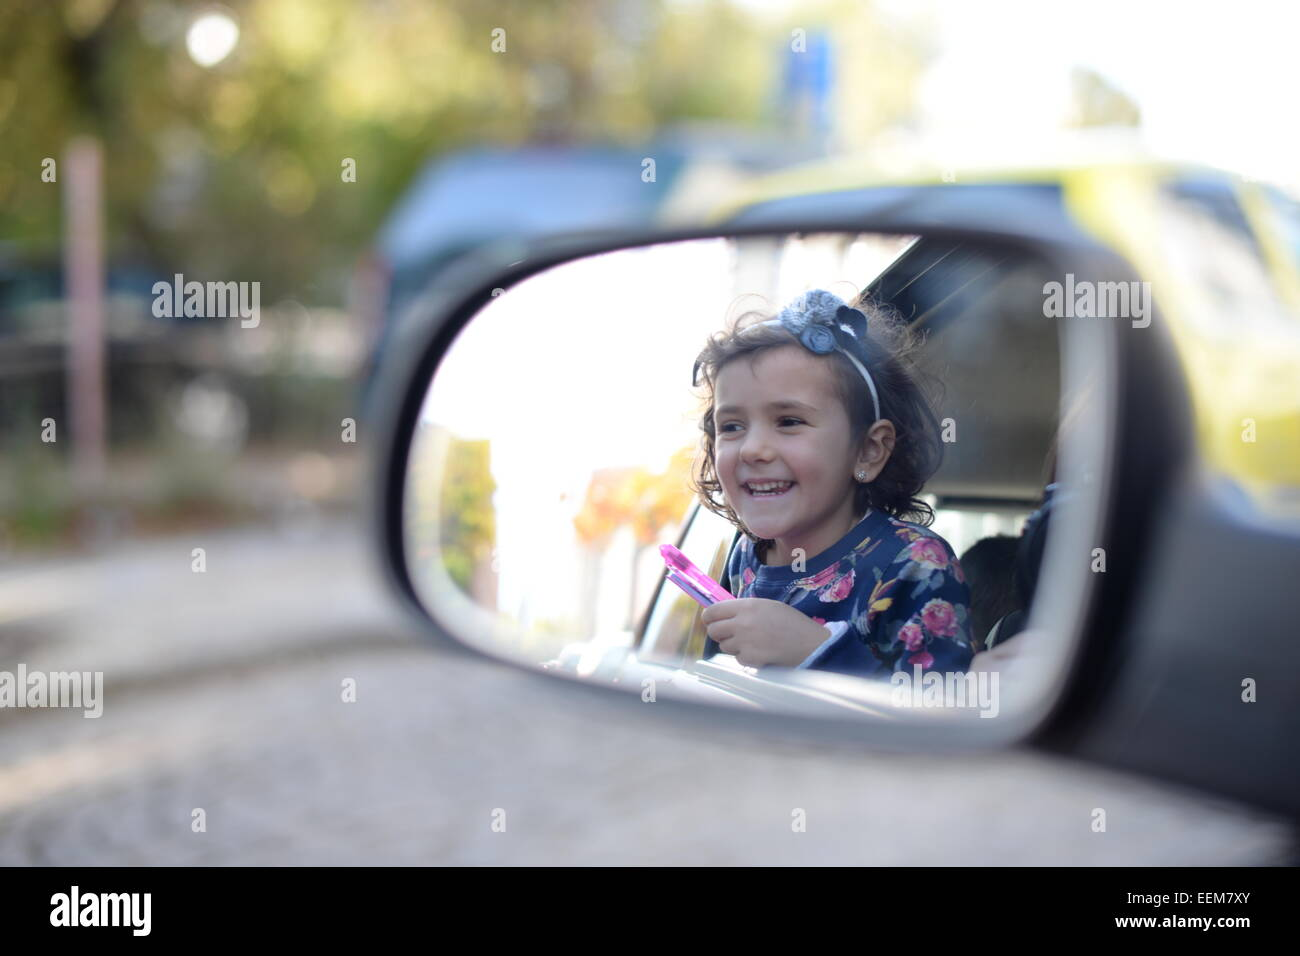 Girl (4-5) enjoying car trip and looking in rearview mirror - Stock Image